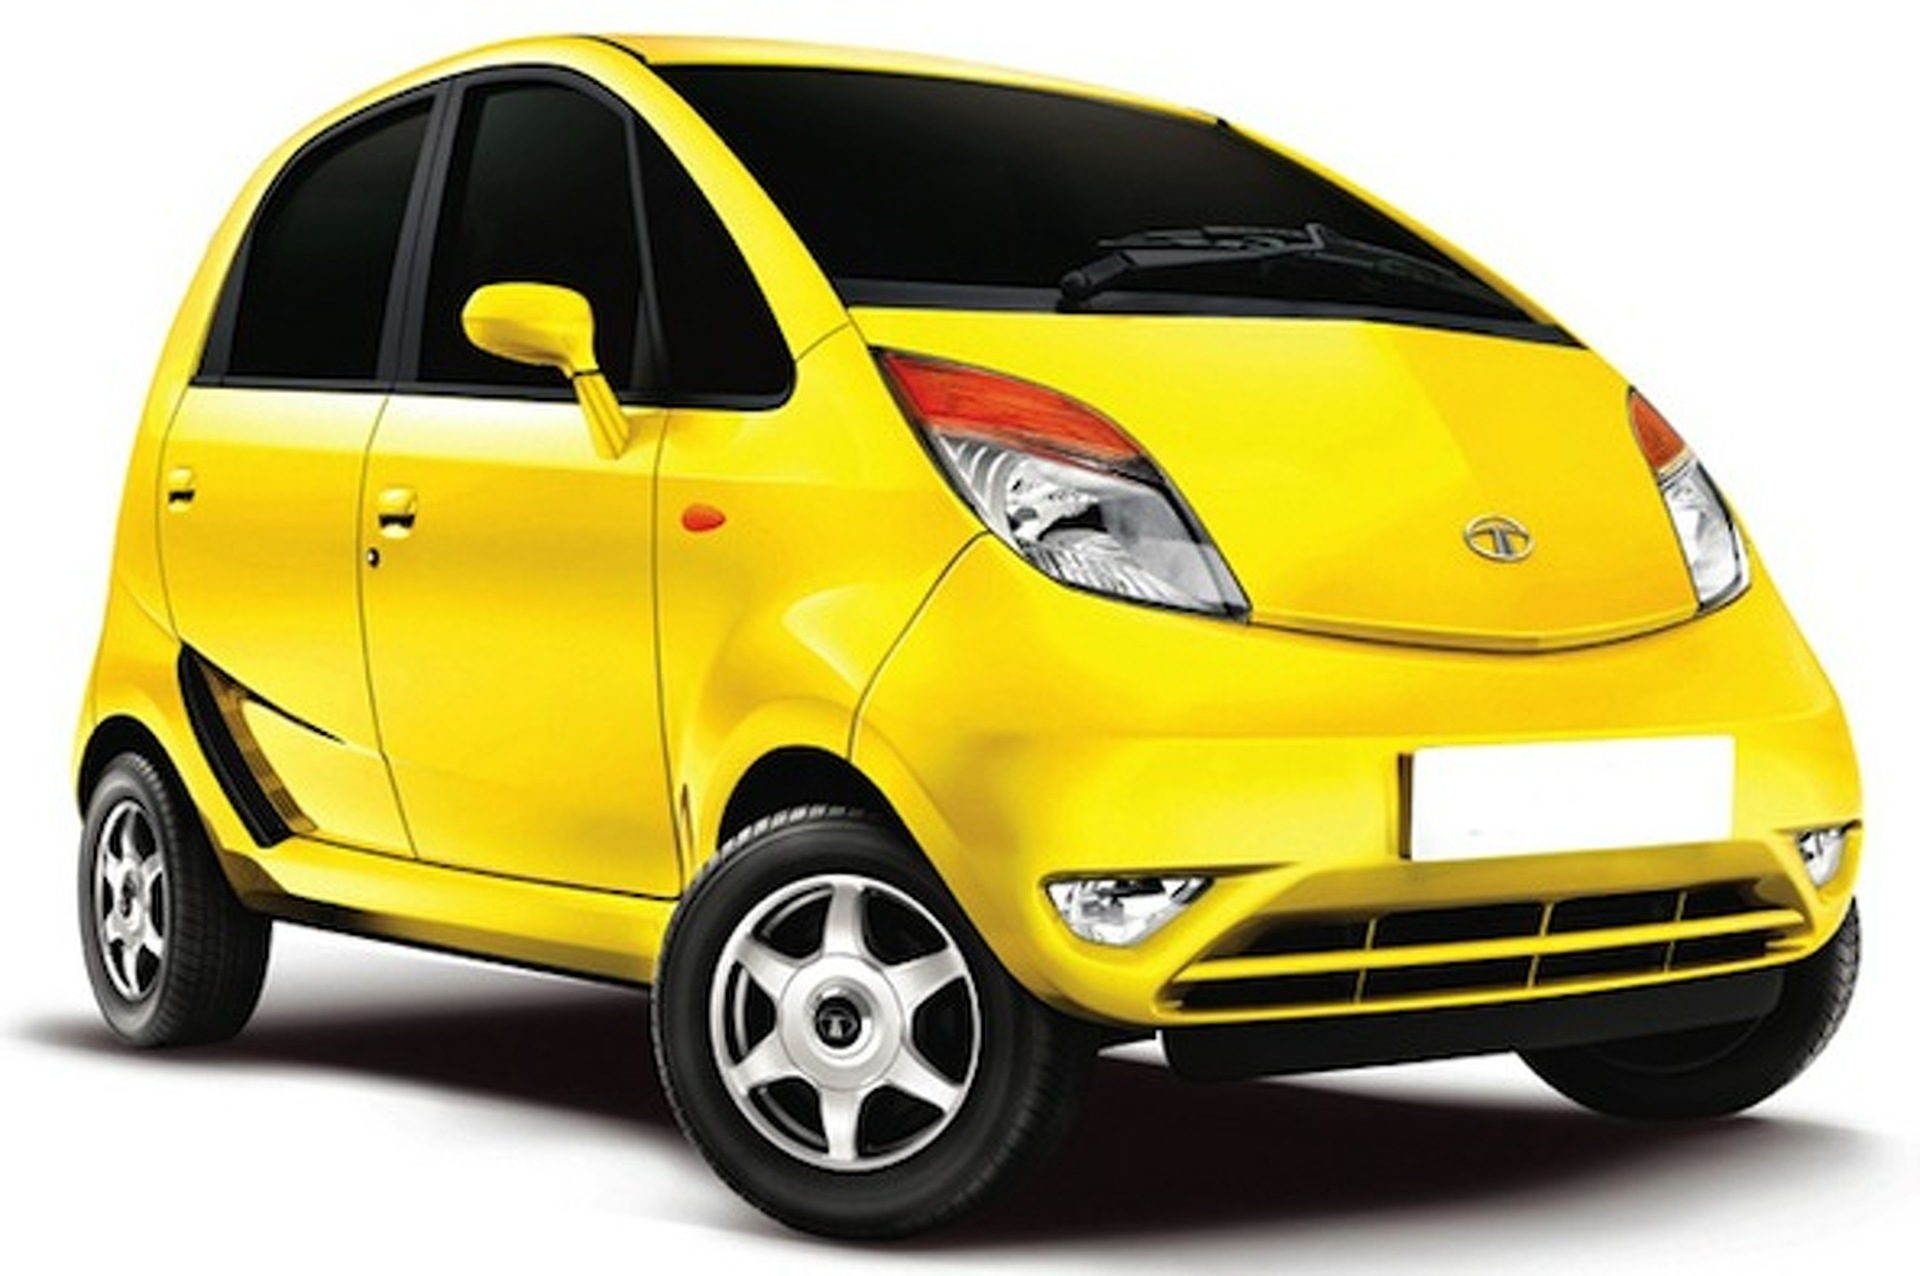 The Global Second Hand Car Market and its Scope